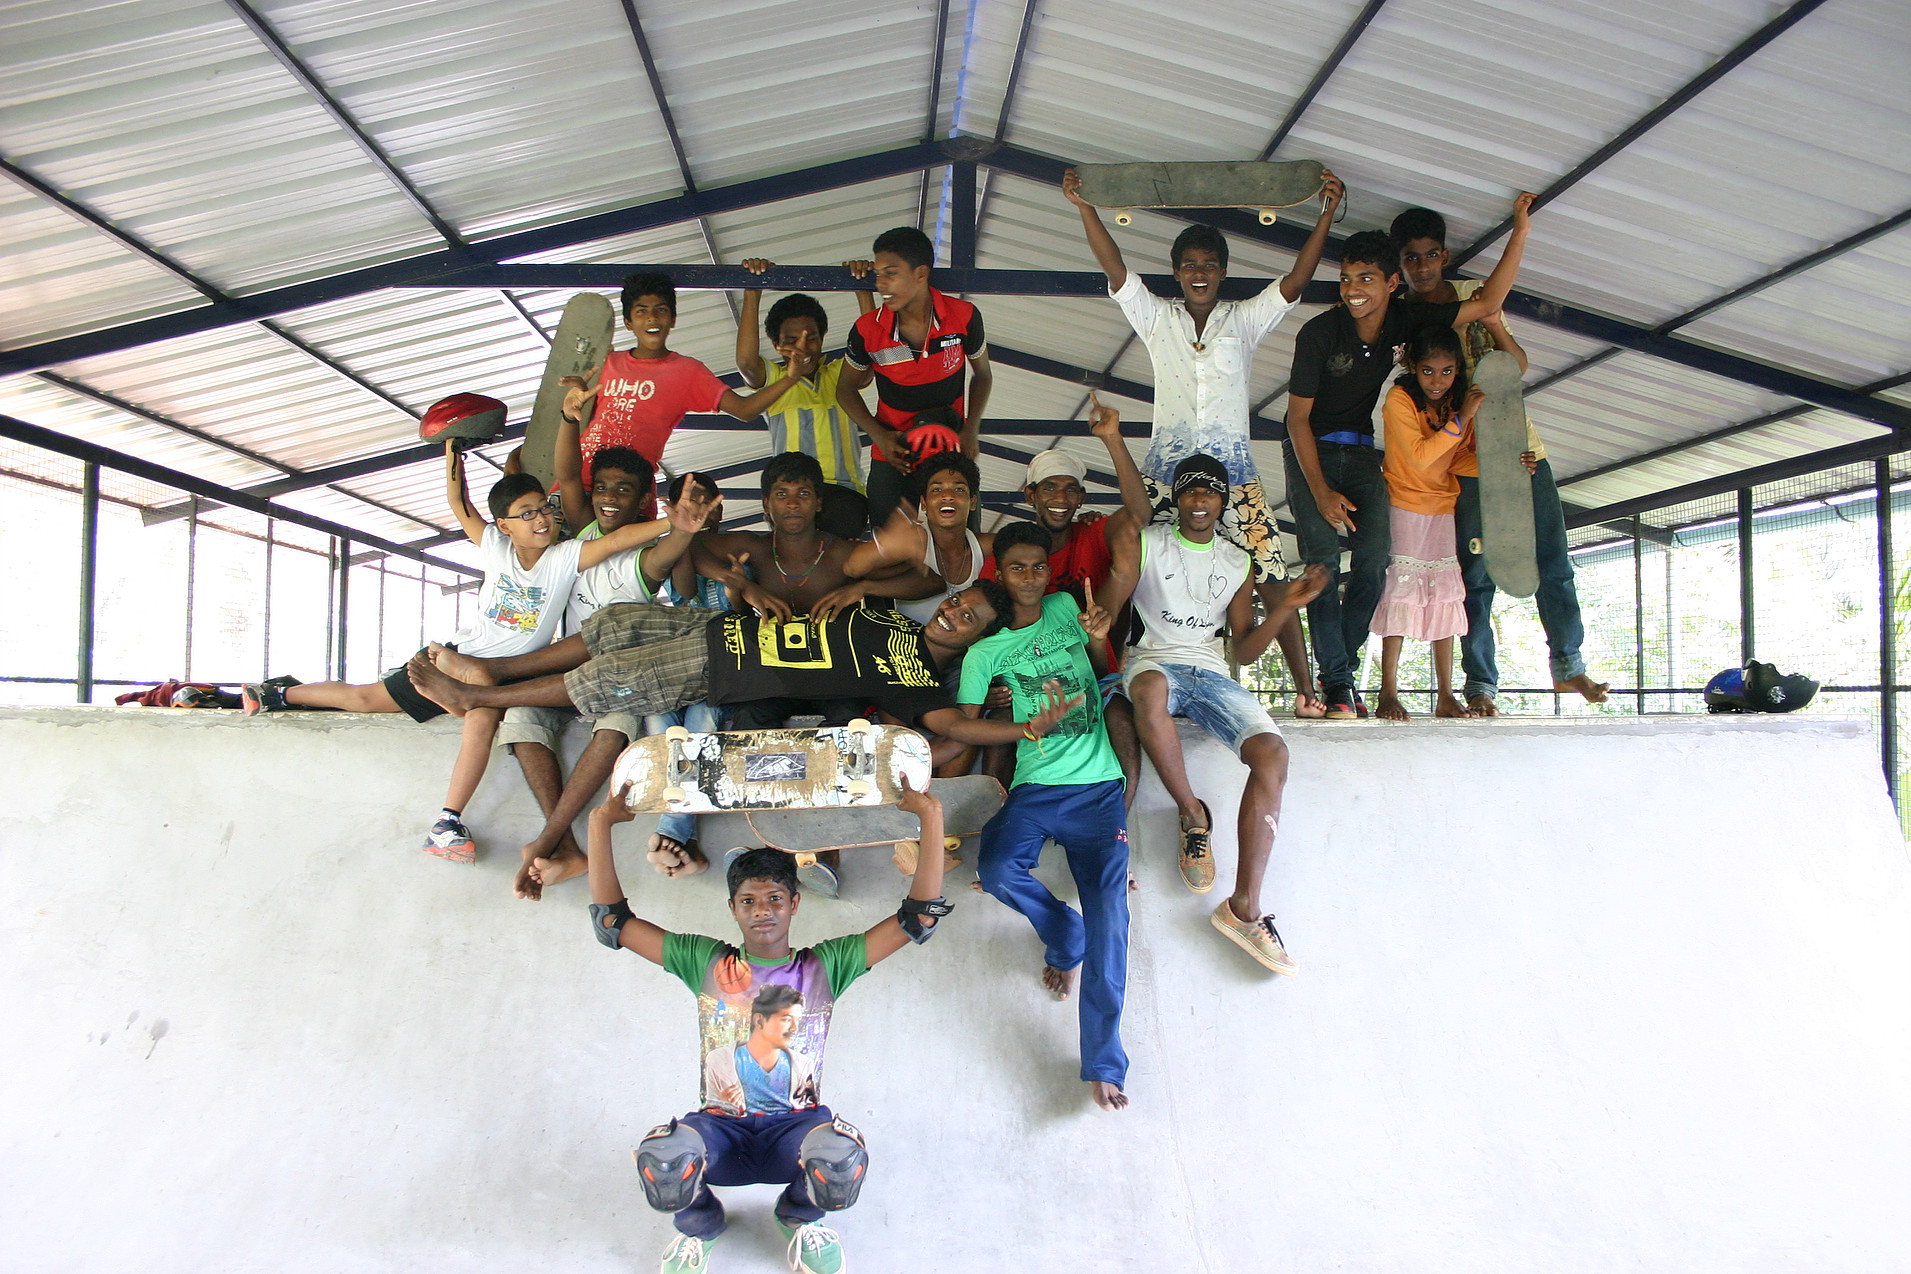 The SISP kids at the rooftop skate club - 'No School, No Skate!' has increased attendance rates dramatically.